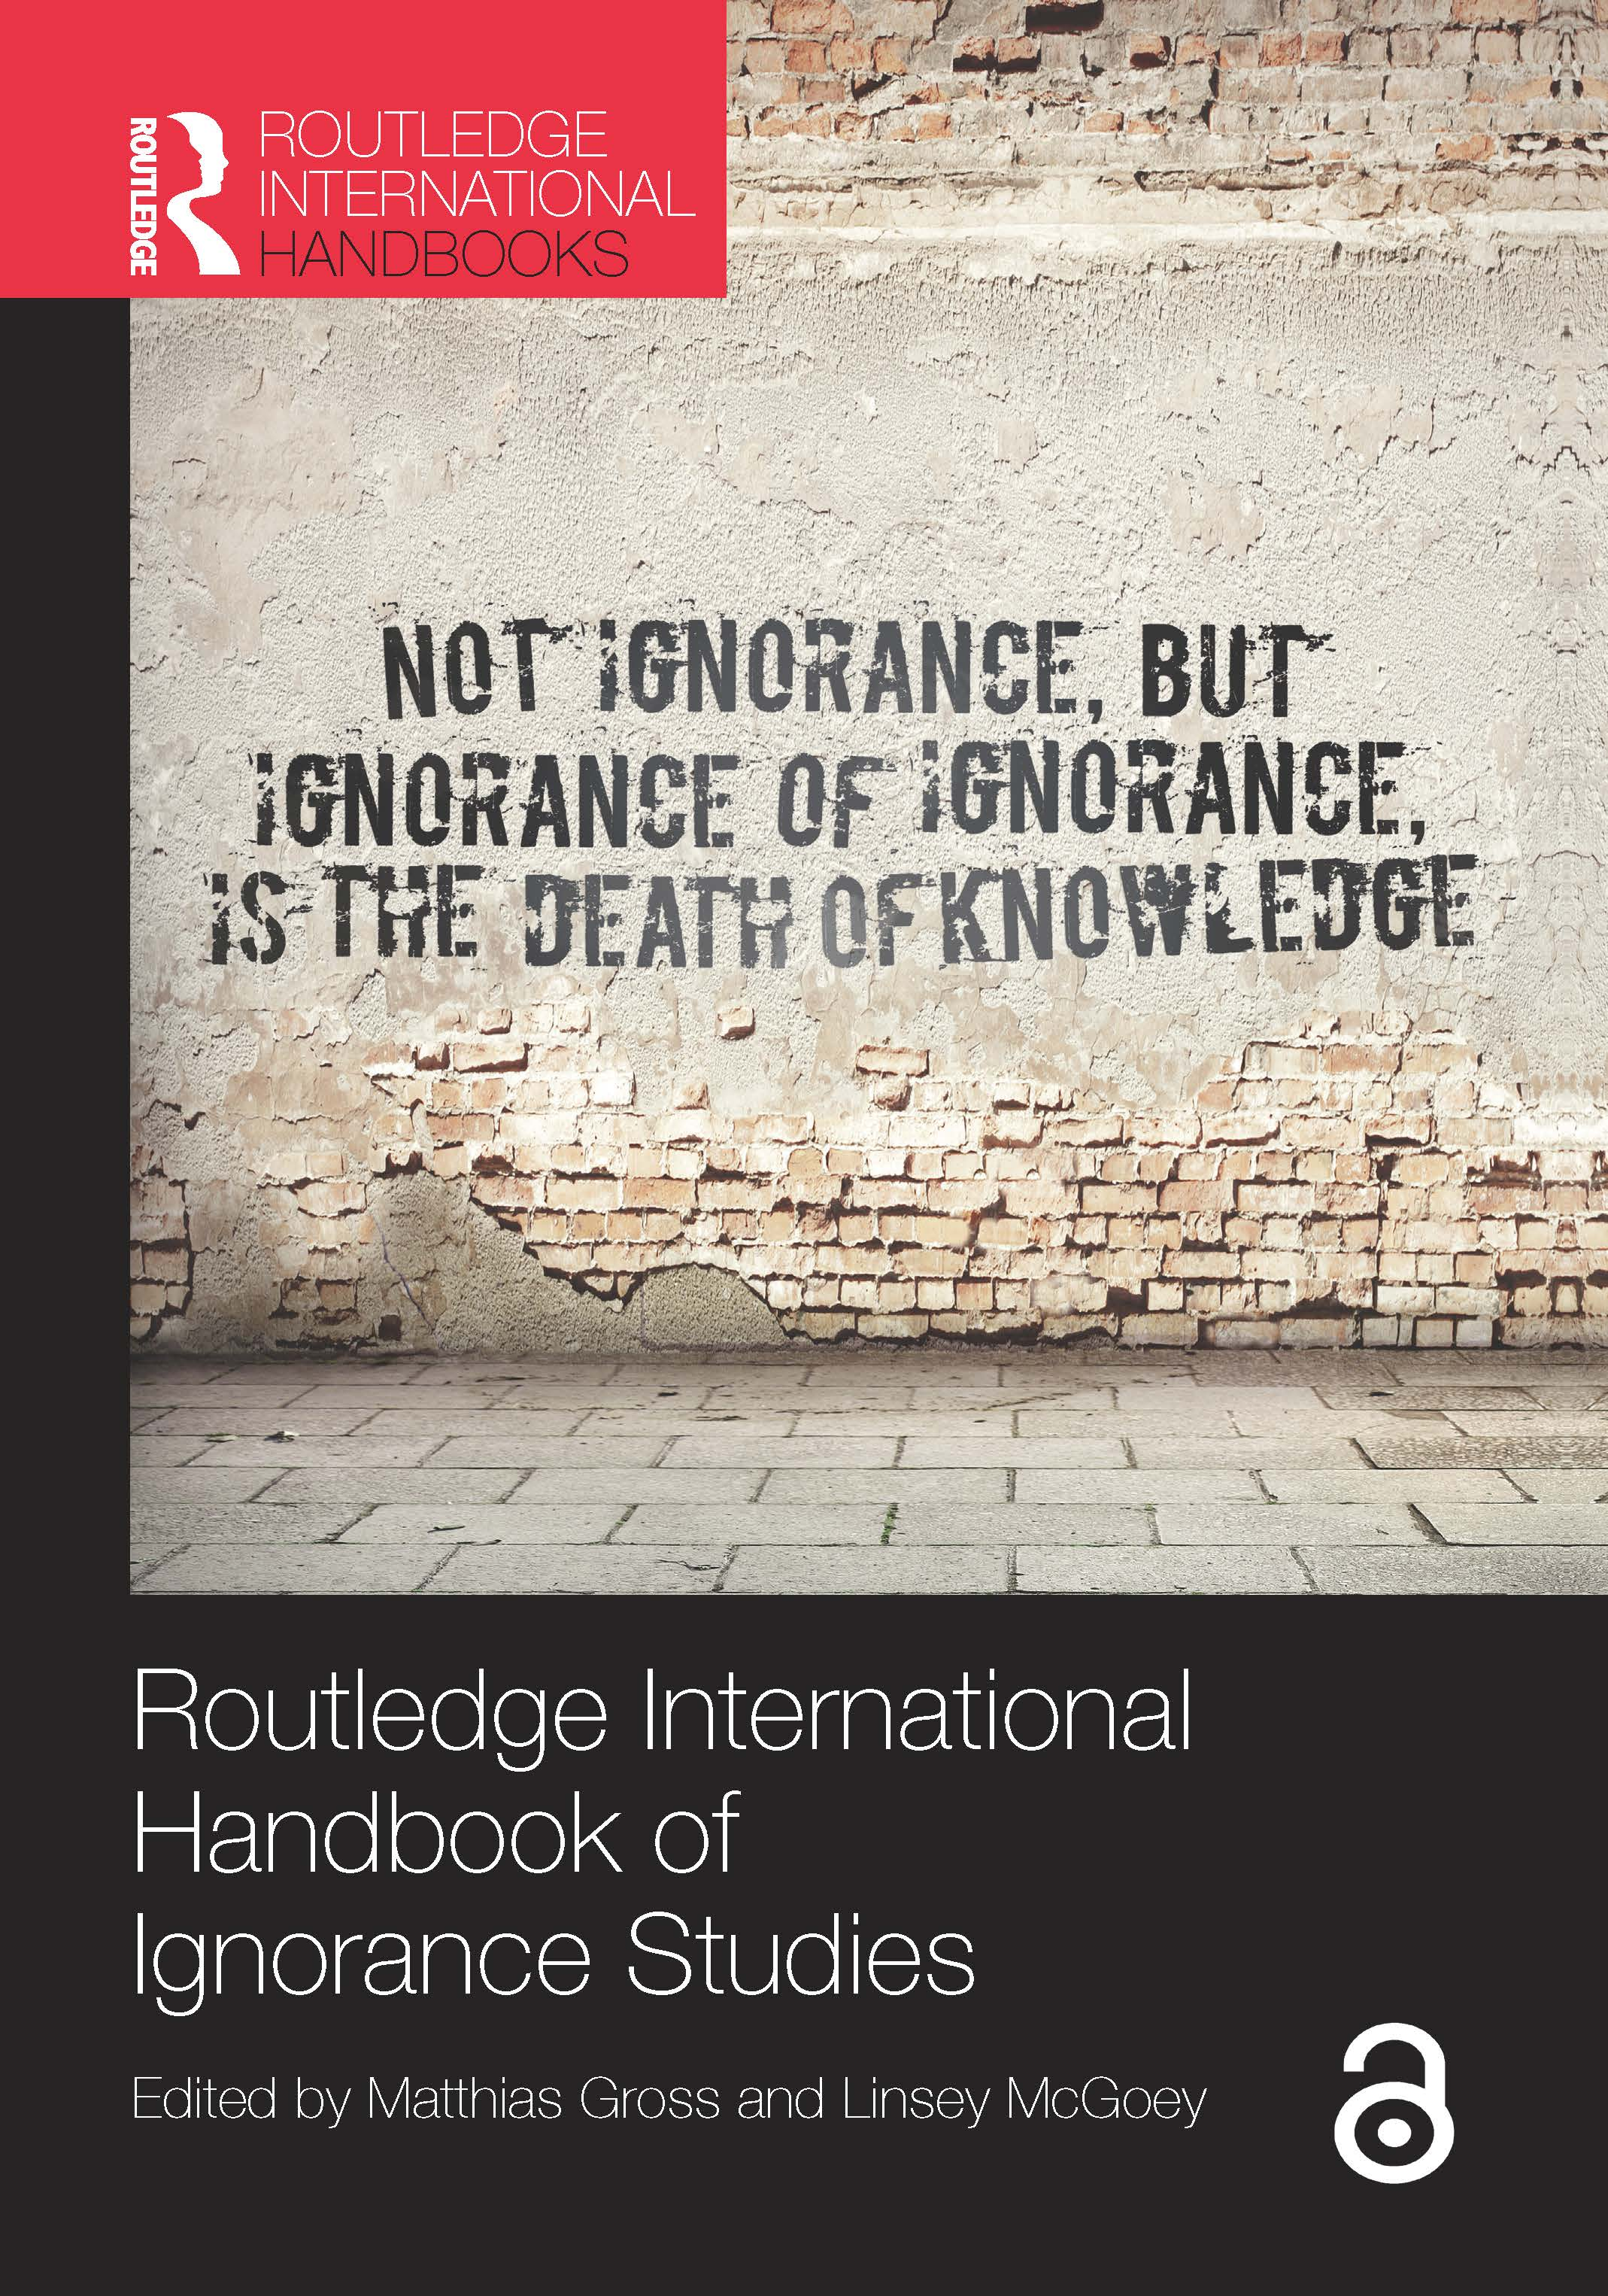 Routledge International Handbook of Ignorance Studies book cover